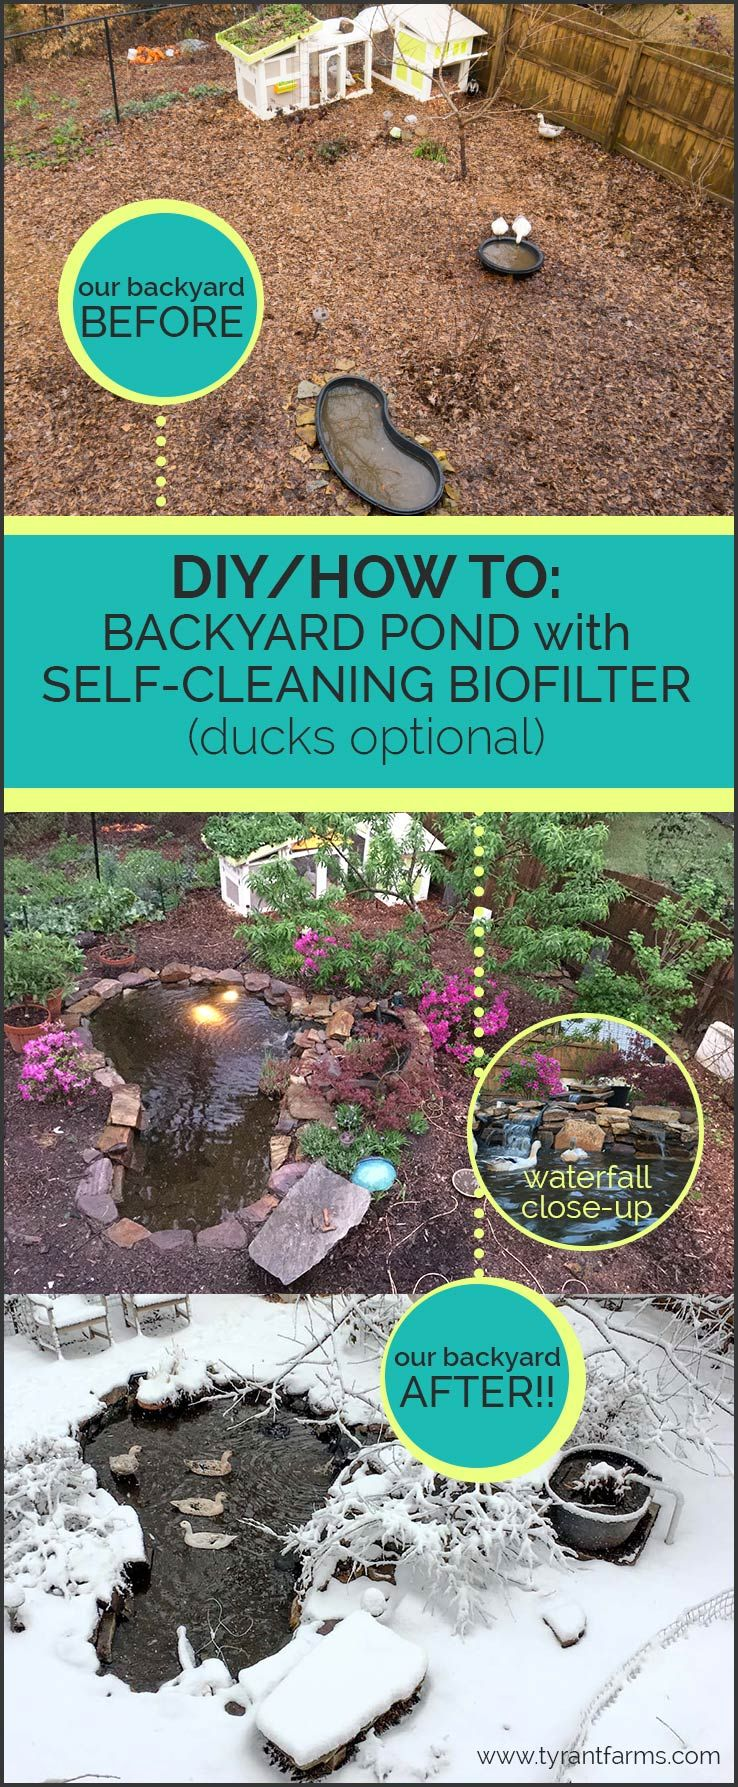 Diy how to build a backyard pond with a self cleaning for Homemade biofilter for duck pond